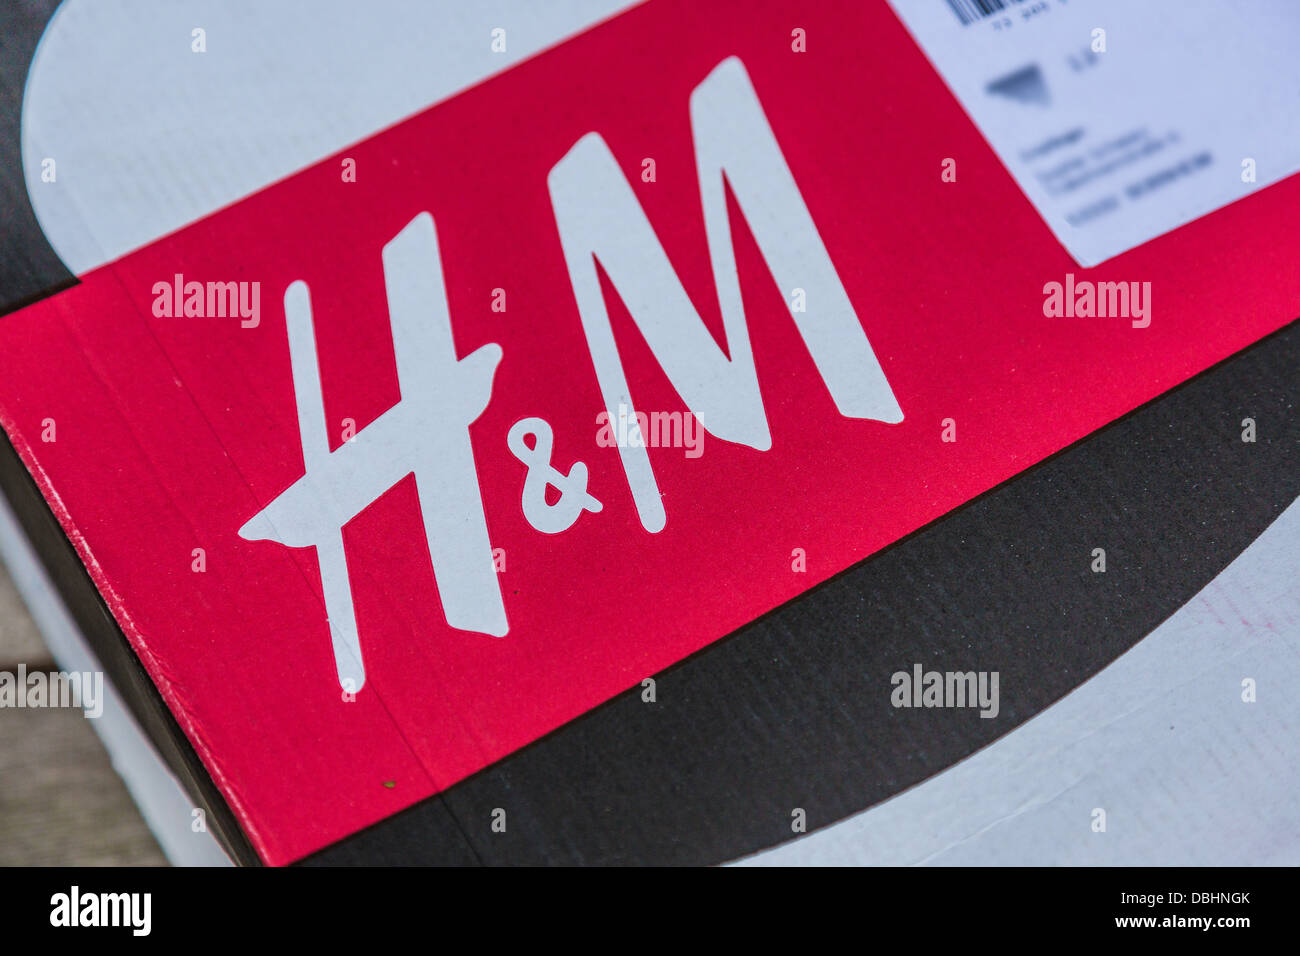 Package of fashion retailer H&M. - Stock Image